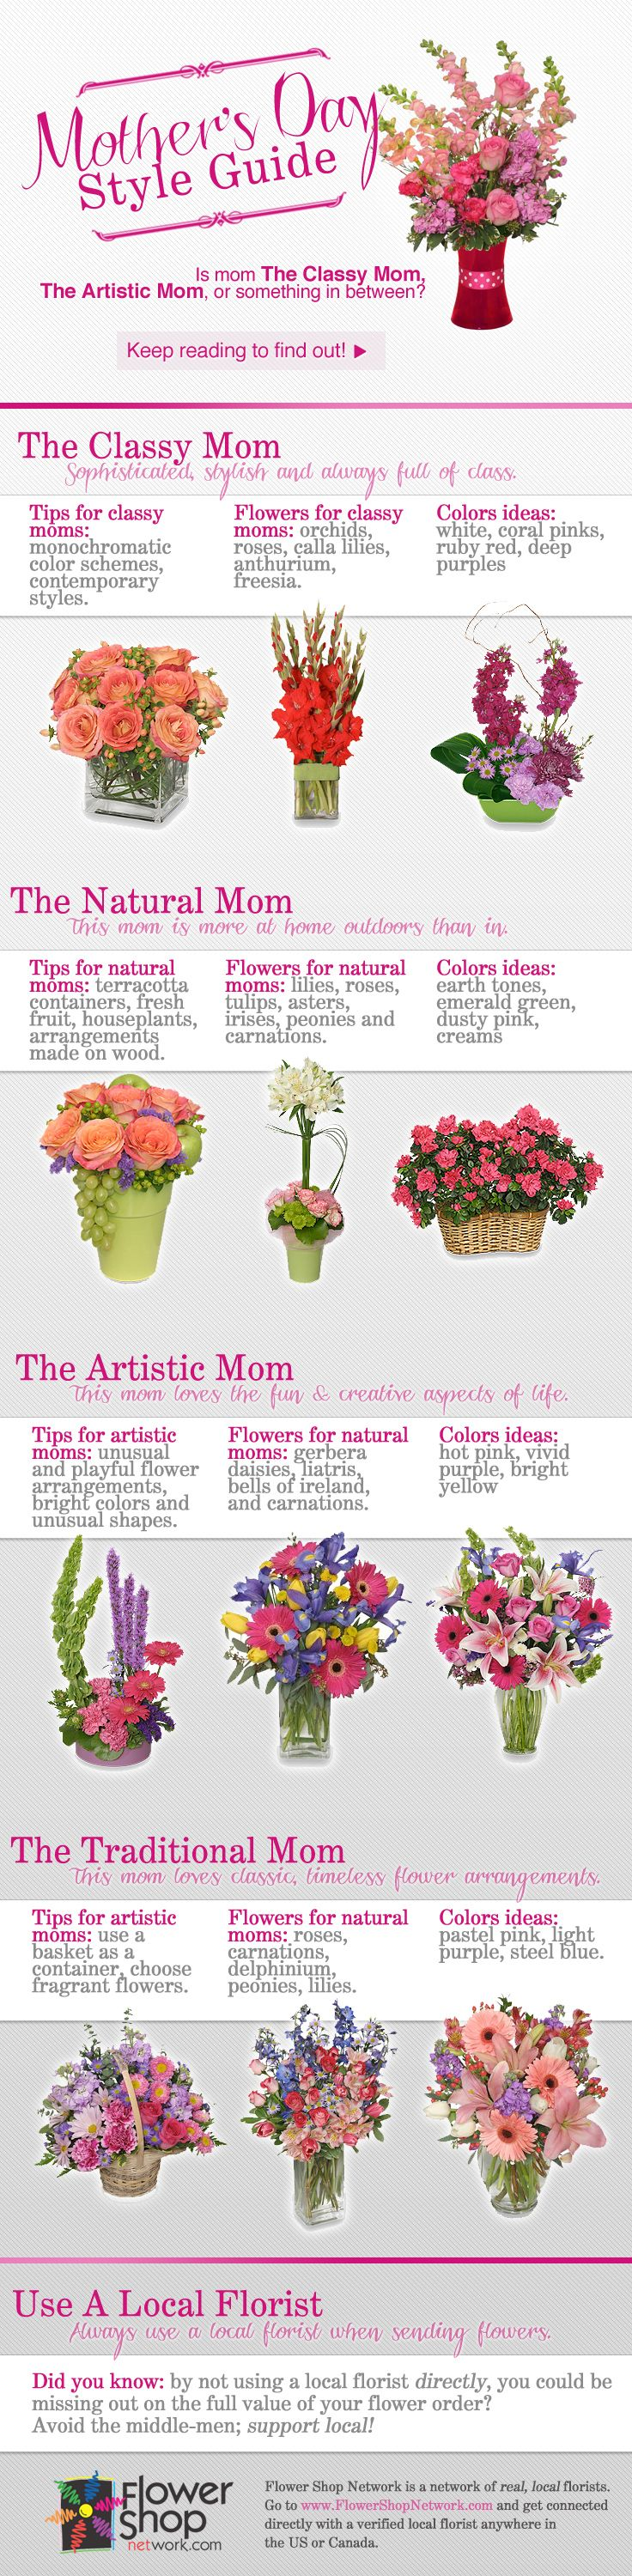 Shopping for great Mother's Day gifts? This style guide is full of great ideas for sending personal Mother's Day flowers to match Mom's style and personality!